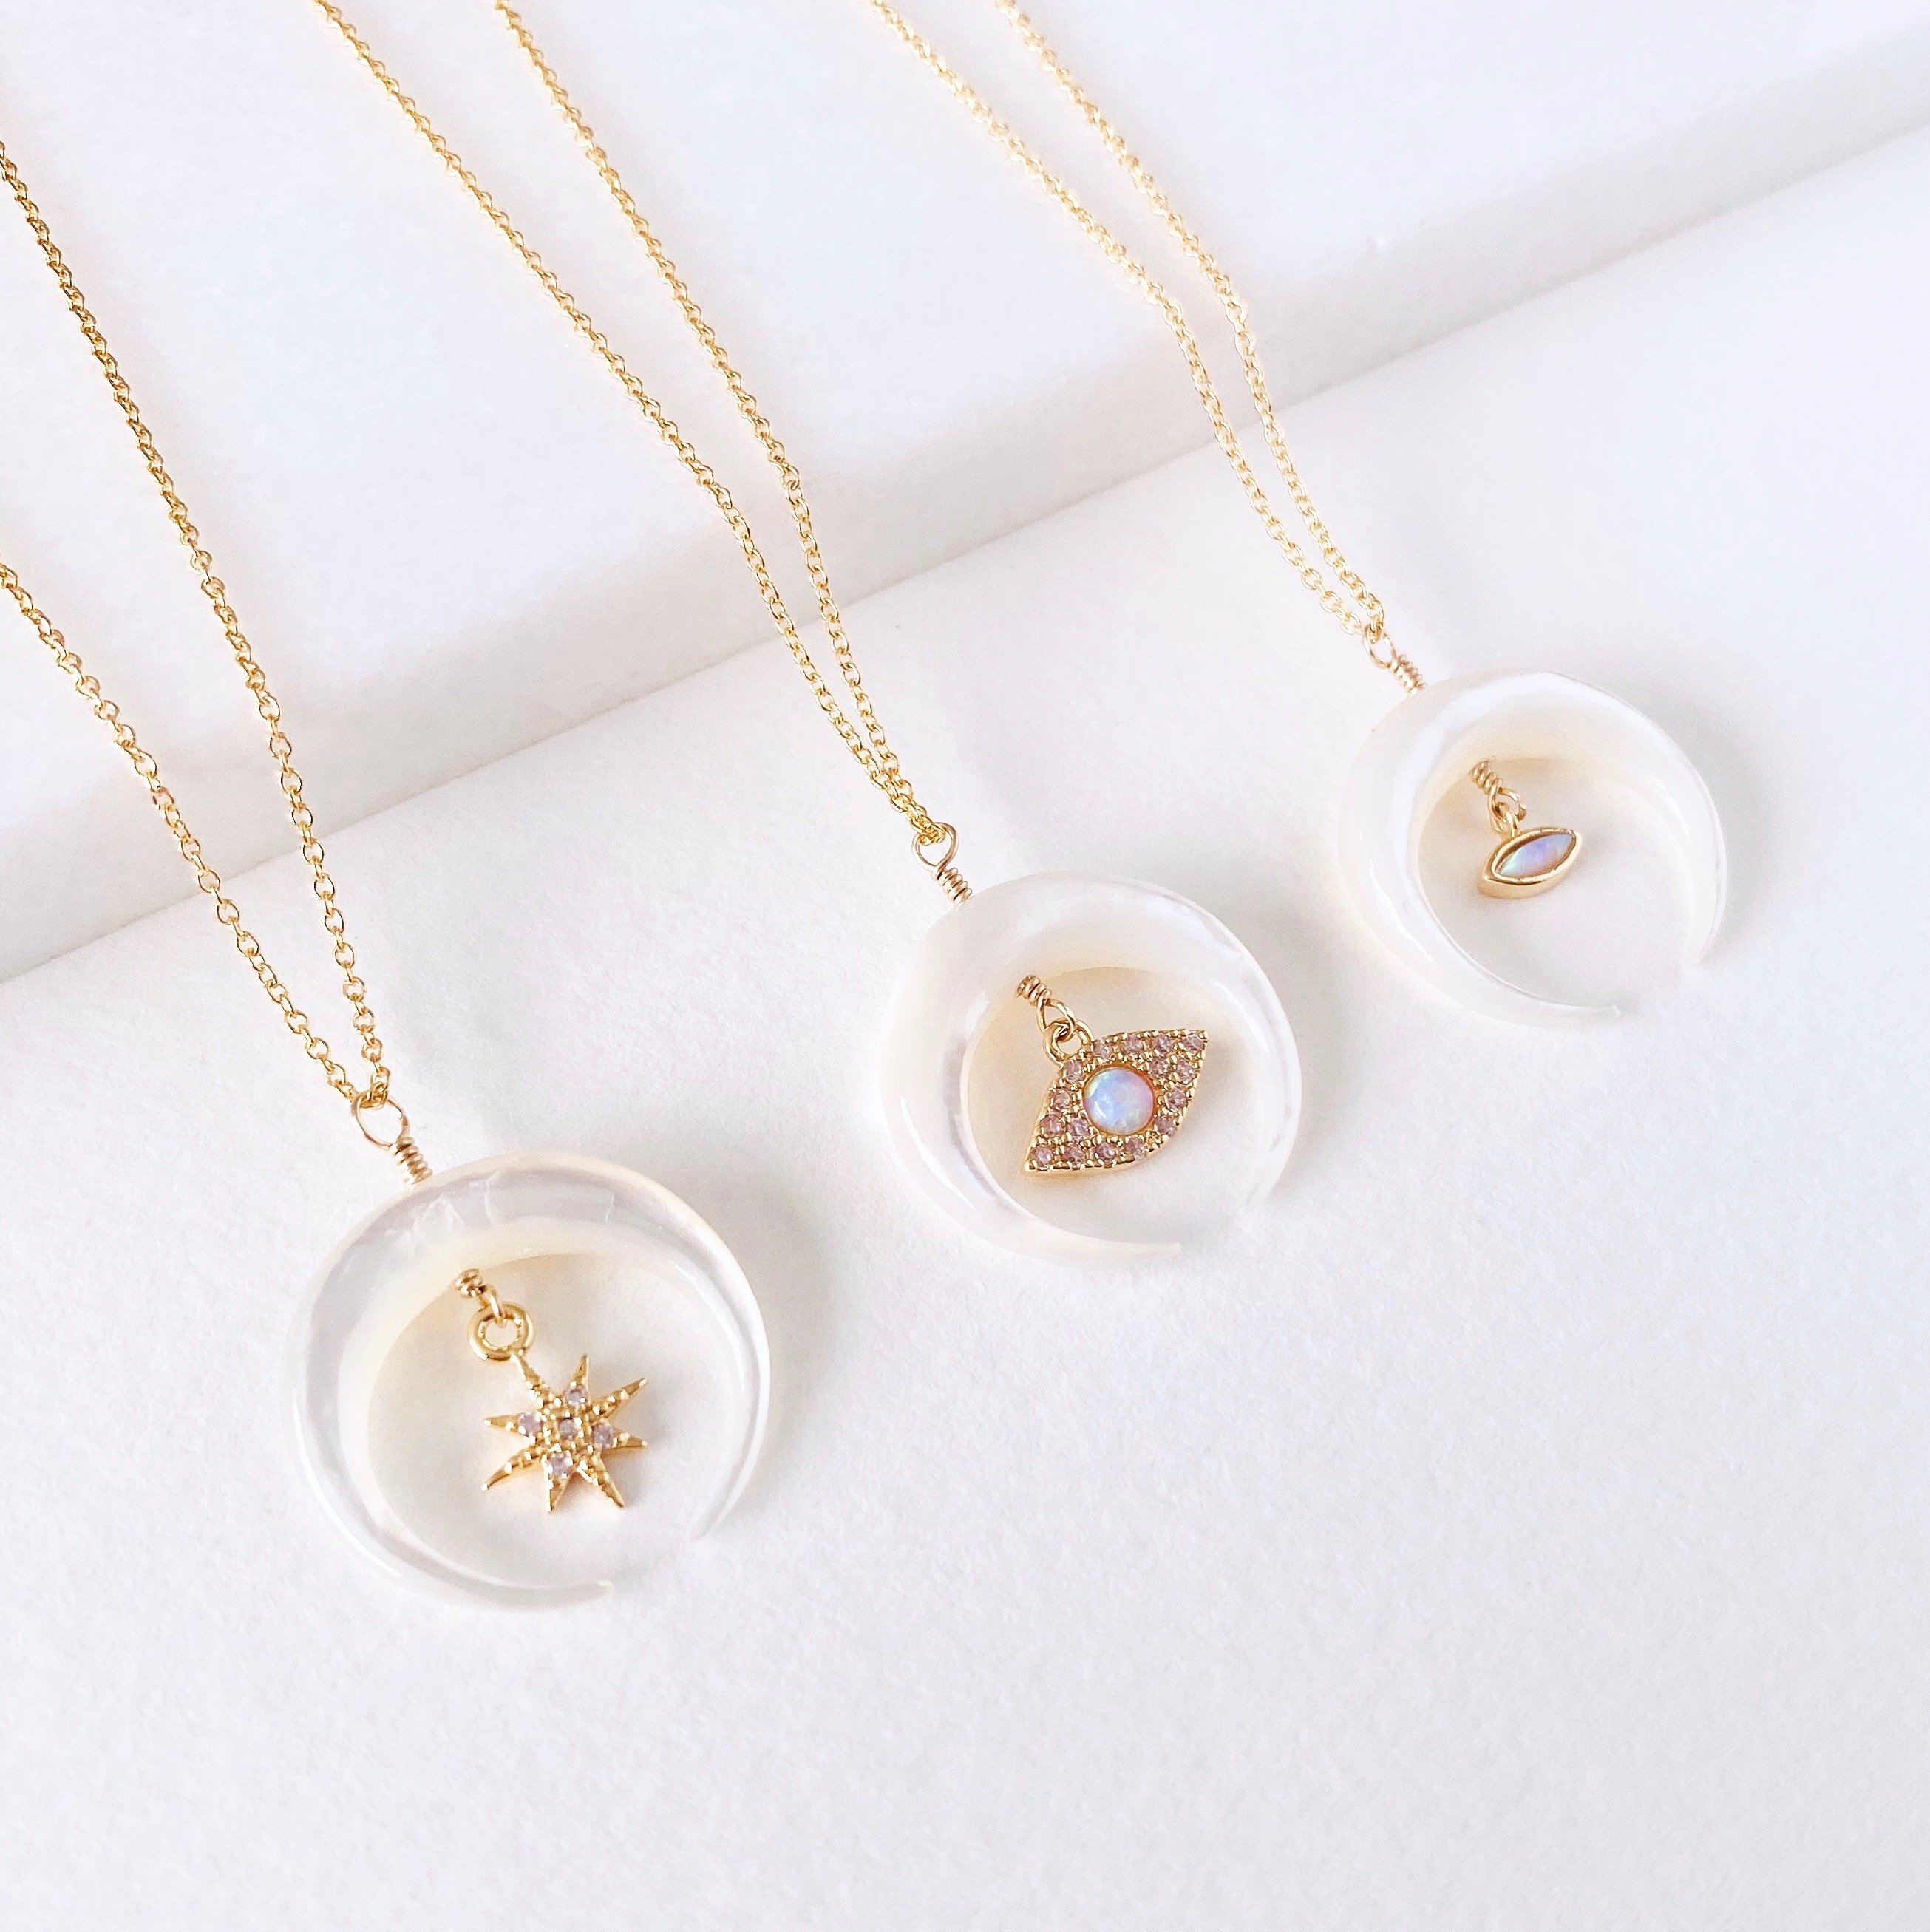 Image of Mother Of Pearl Crescent Moon Charm Necklace